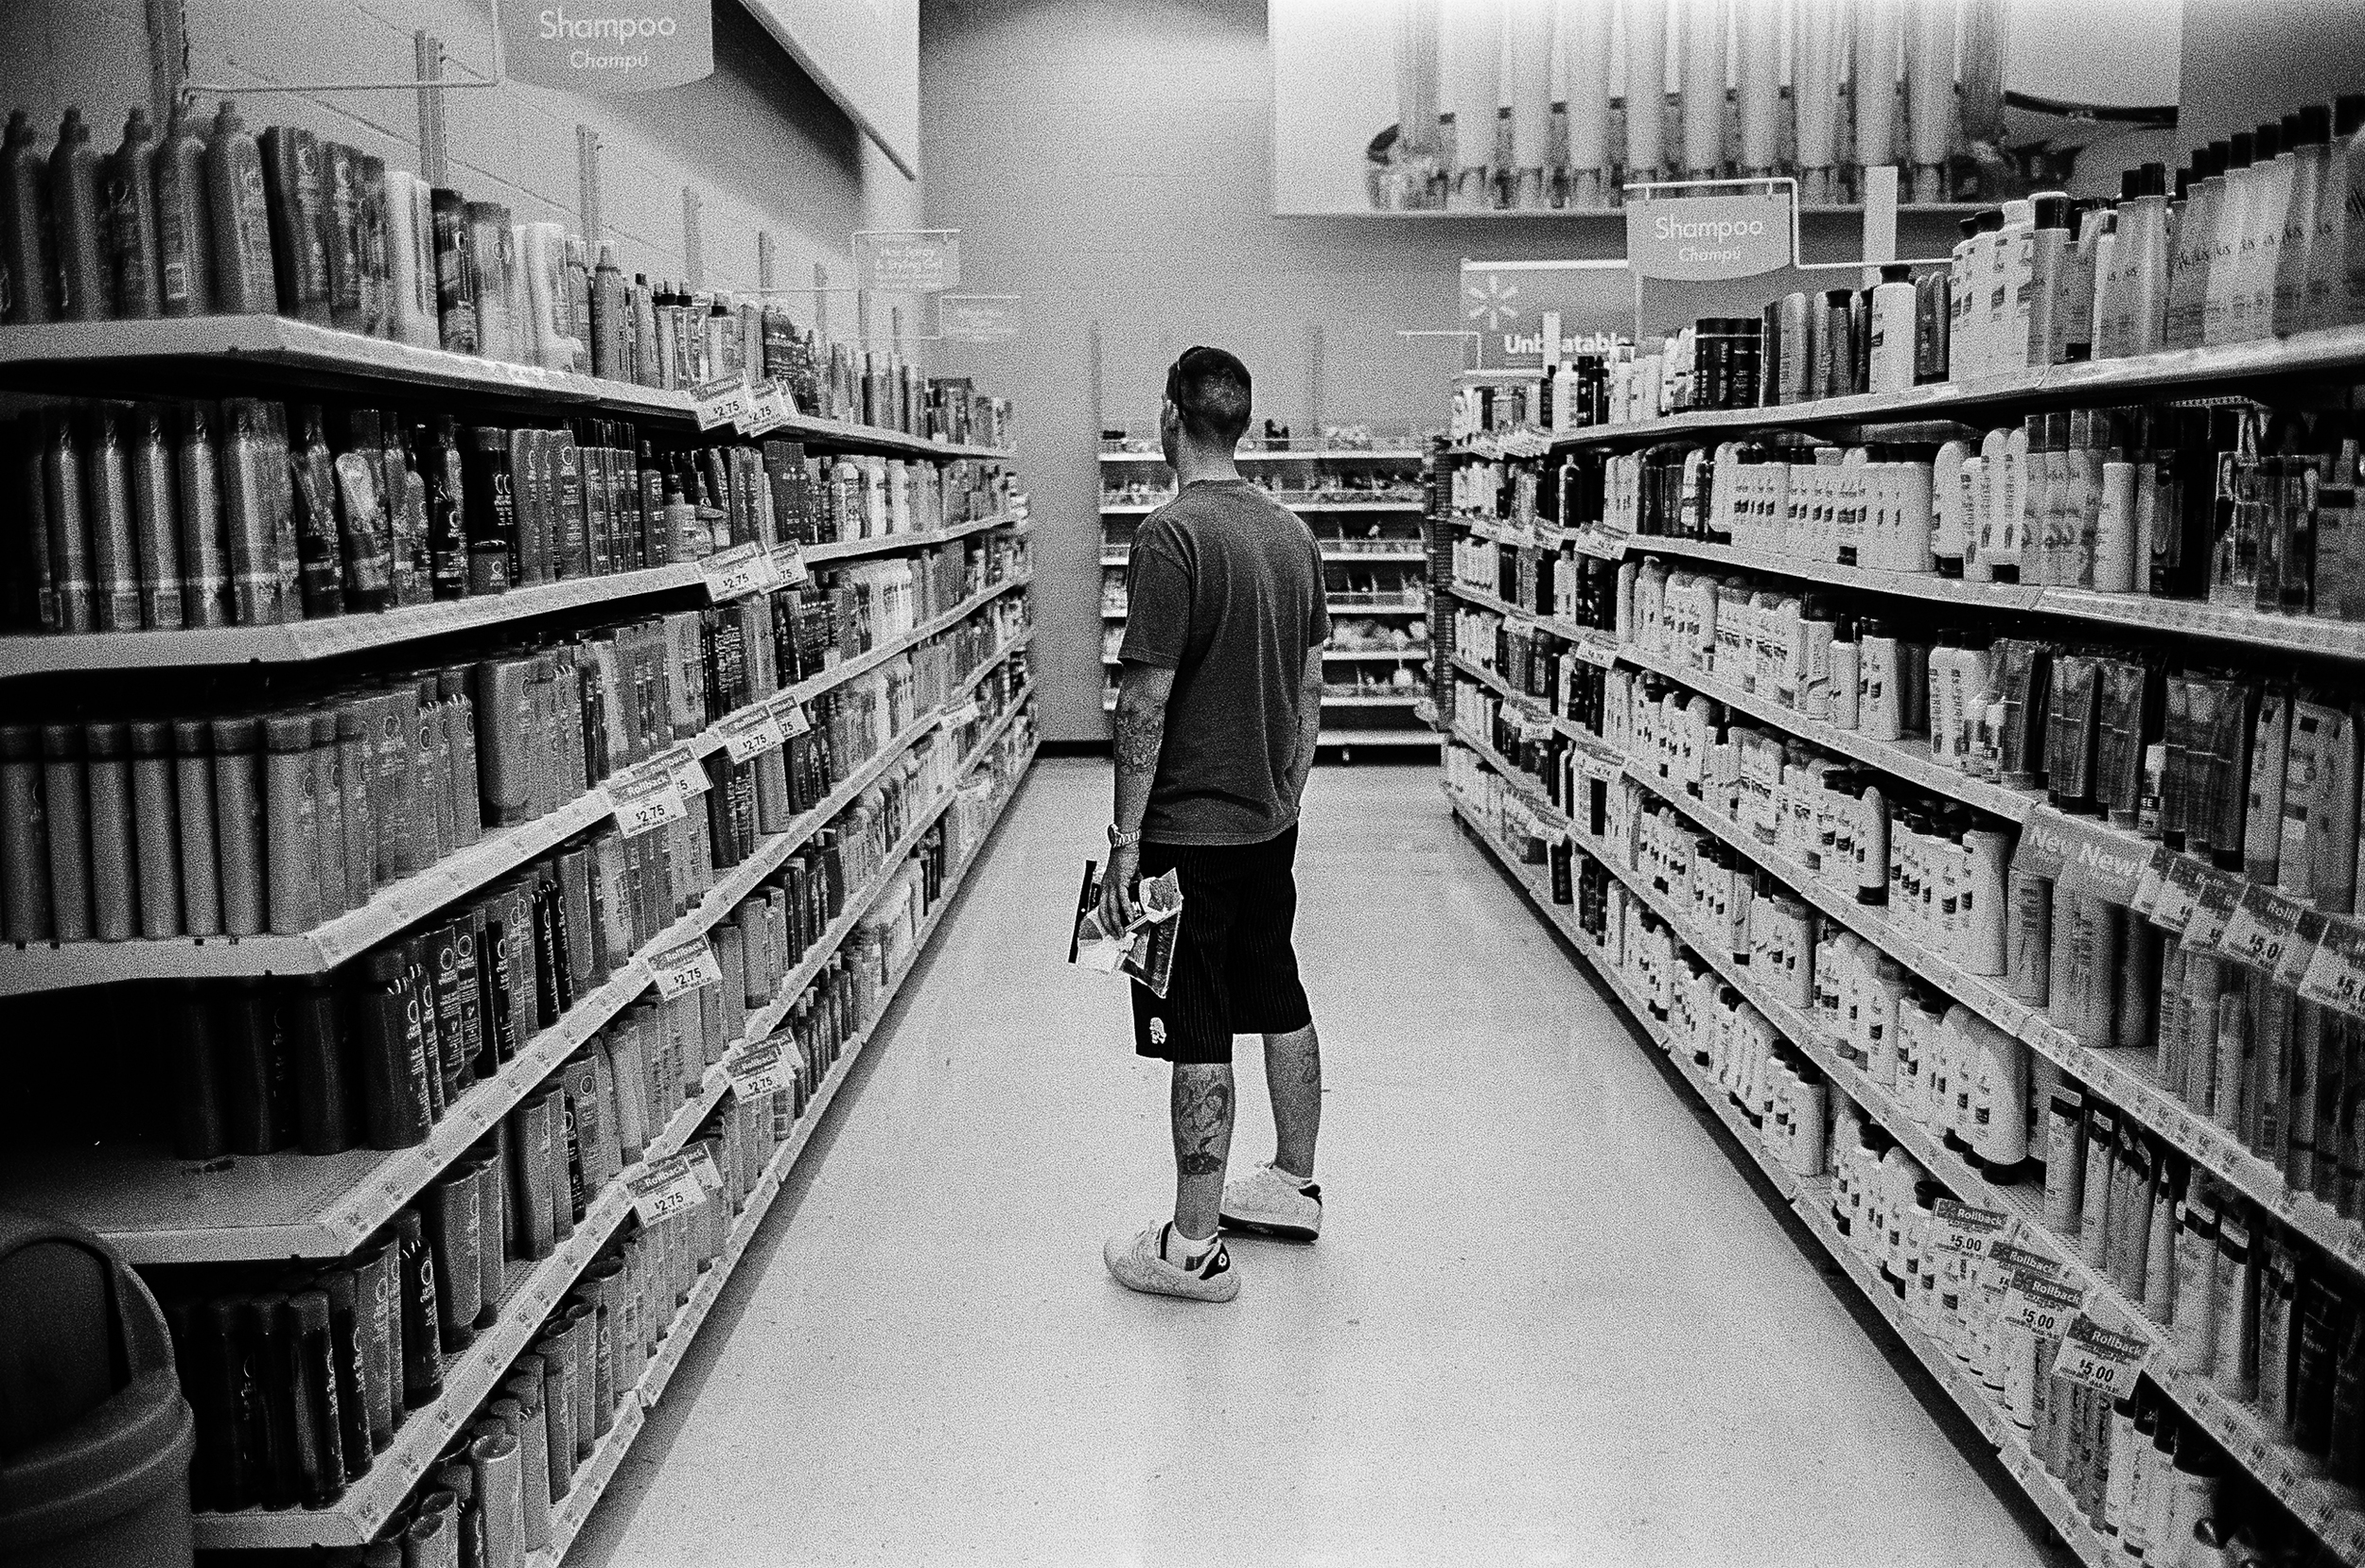 Veteran William Martinez is overwhelmed by the choices of products during his first visit to a Walmart after returning home from serving 12 months in Afghanistan; Corpus Christie, Texas, 2010. Martinez can only stay in stores for a few minutes before undergoing an anxiety attack.